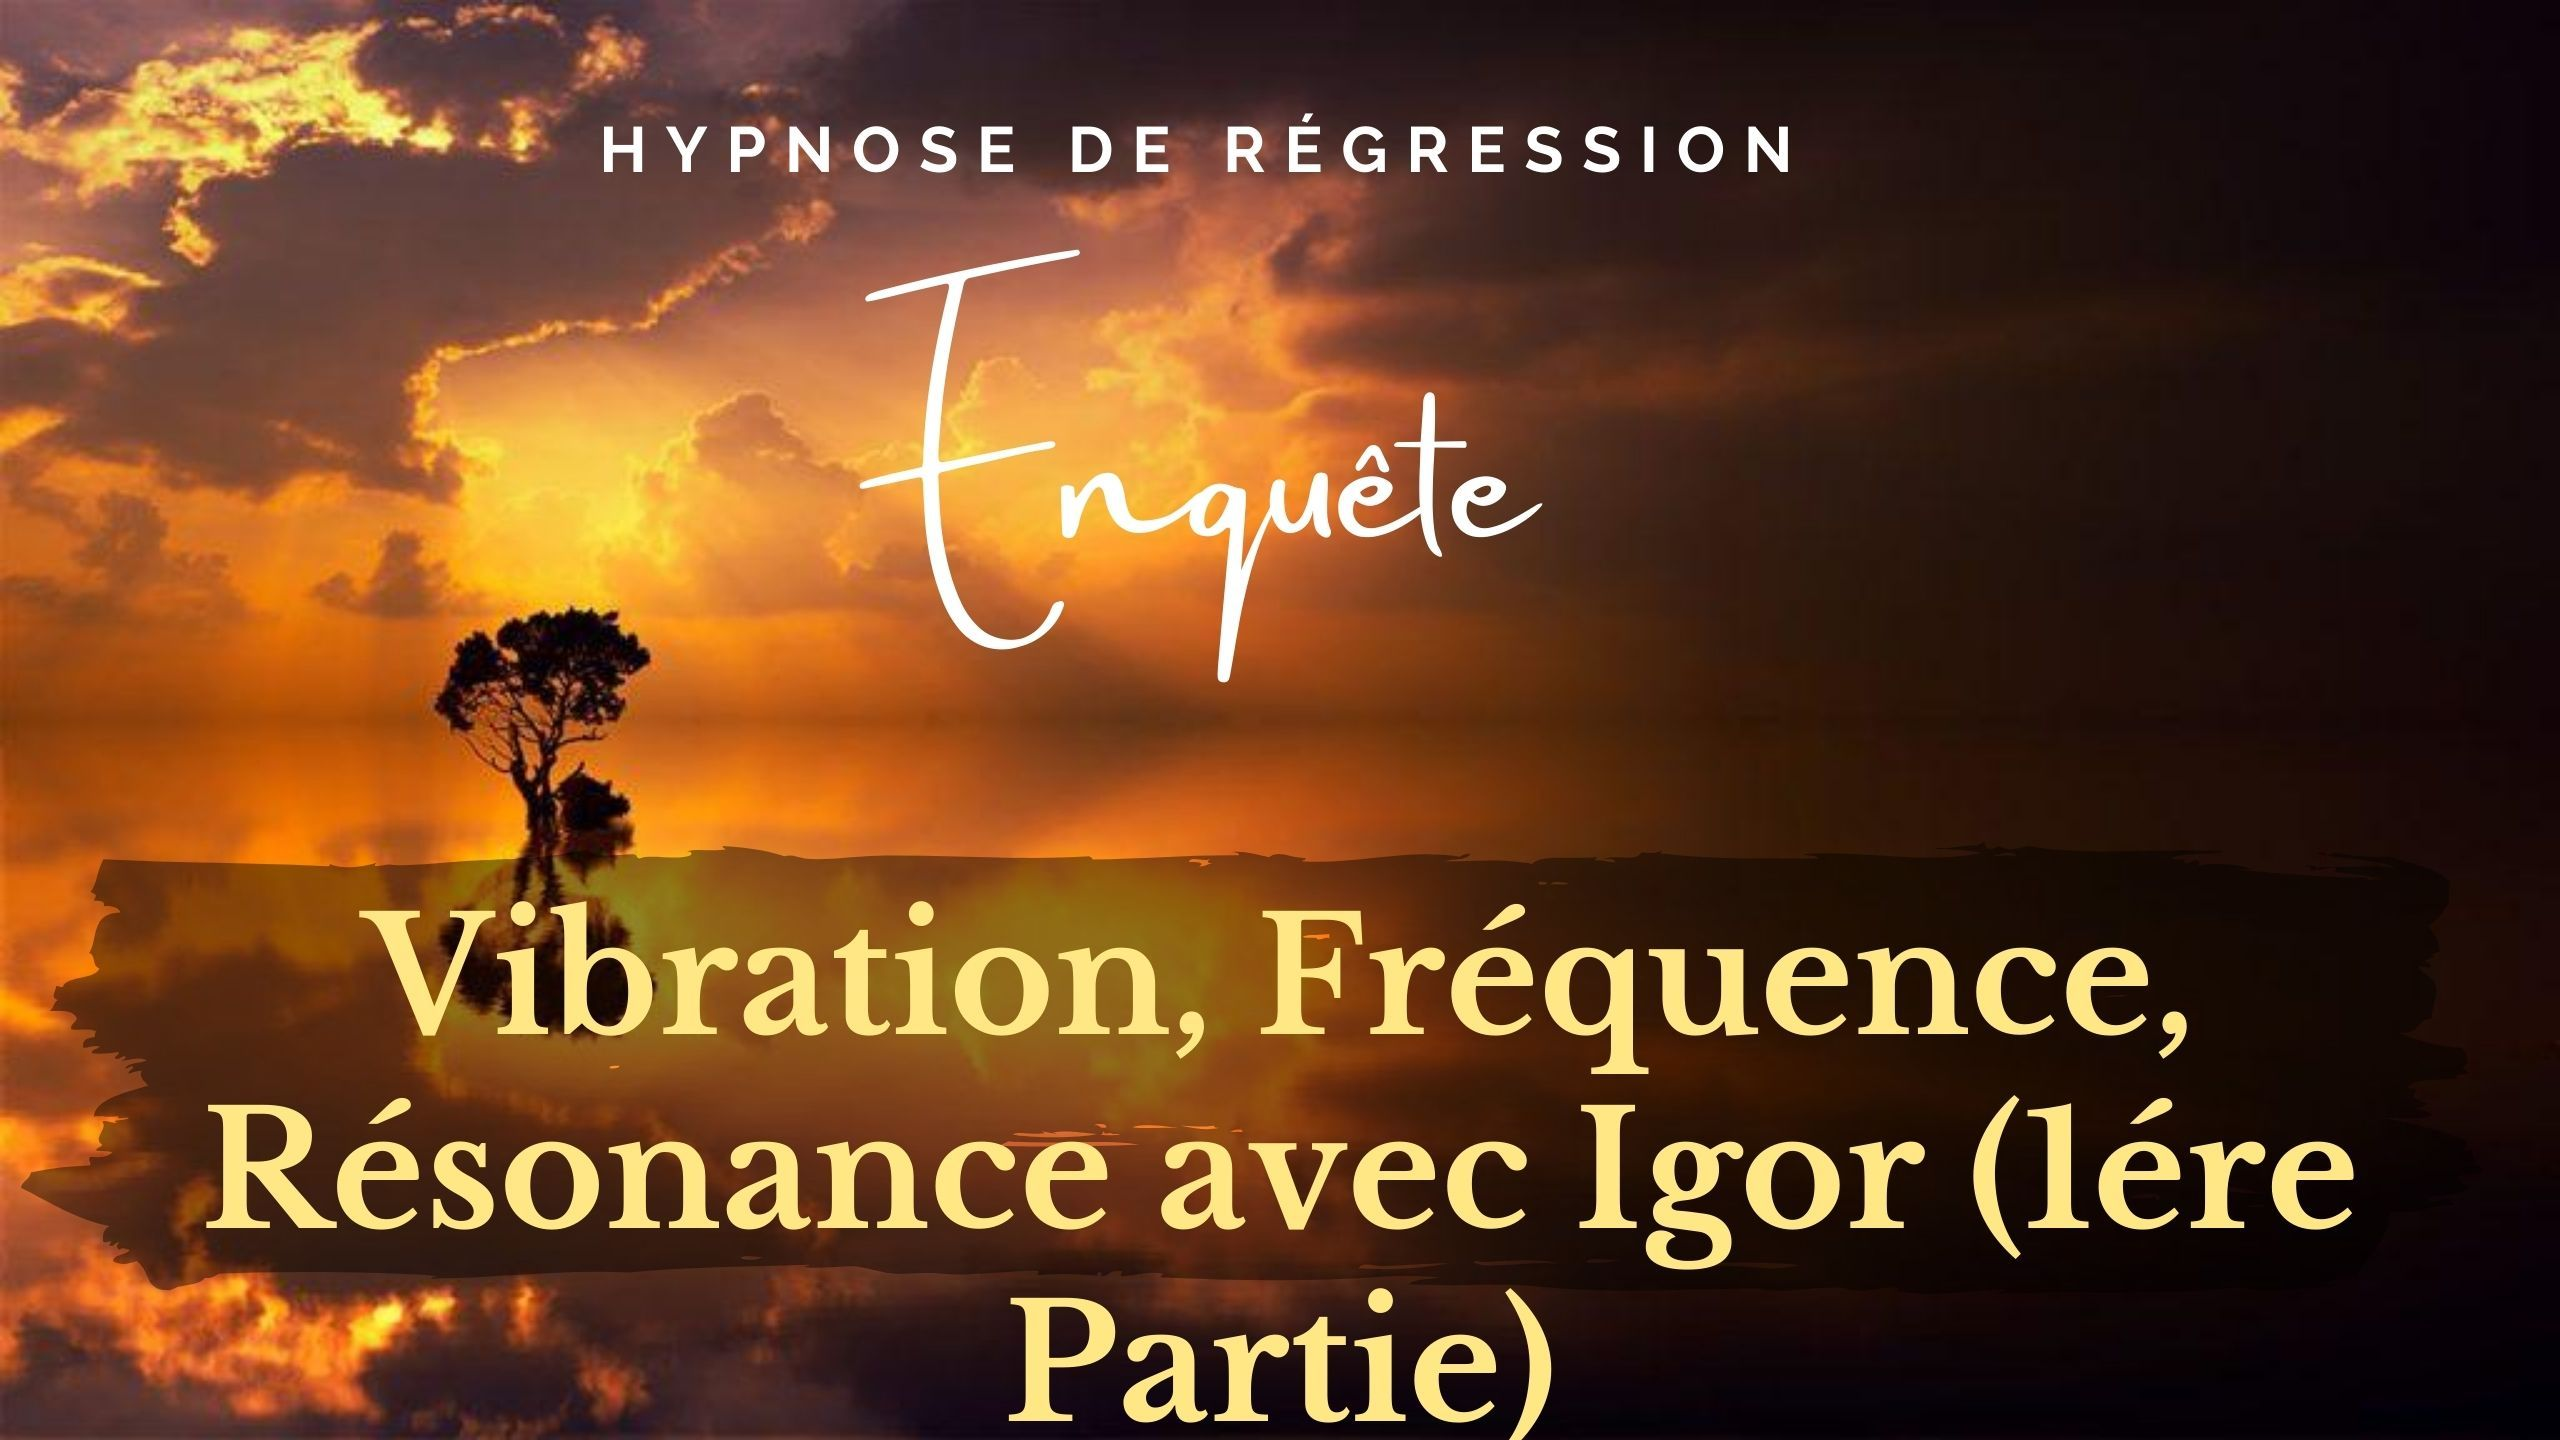 Enquete 30 Vibration Frequence Resonance Regression Conscience Liberee Memoires